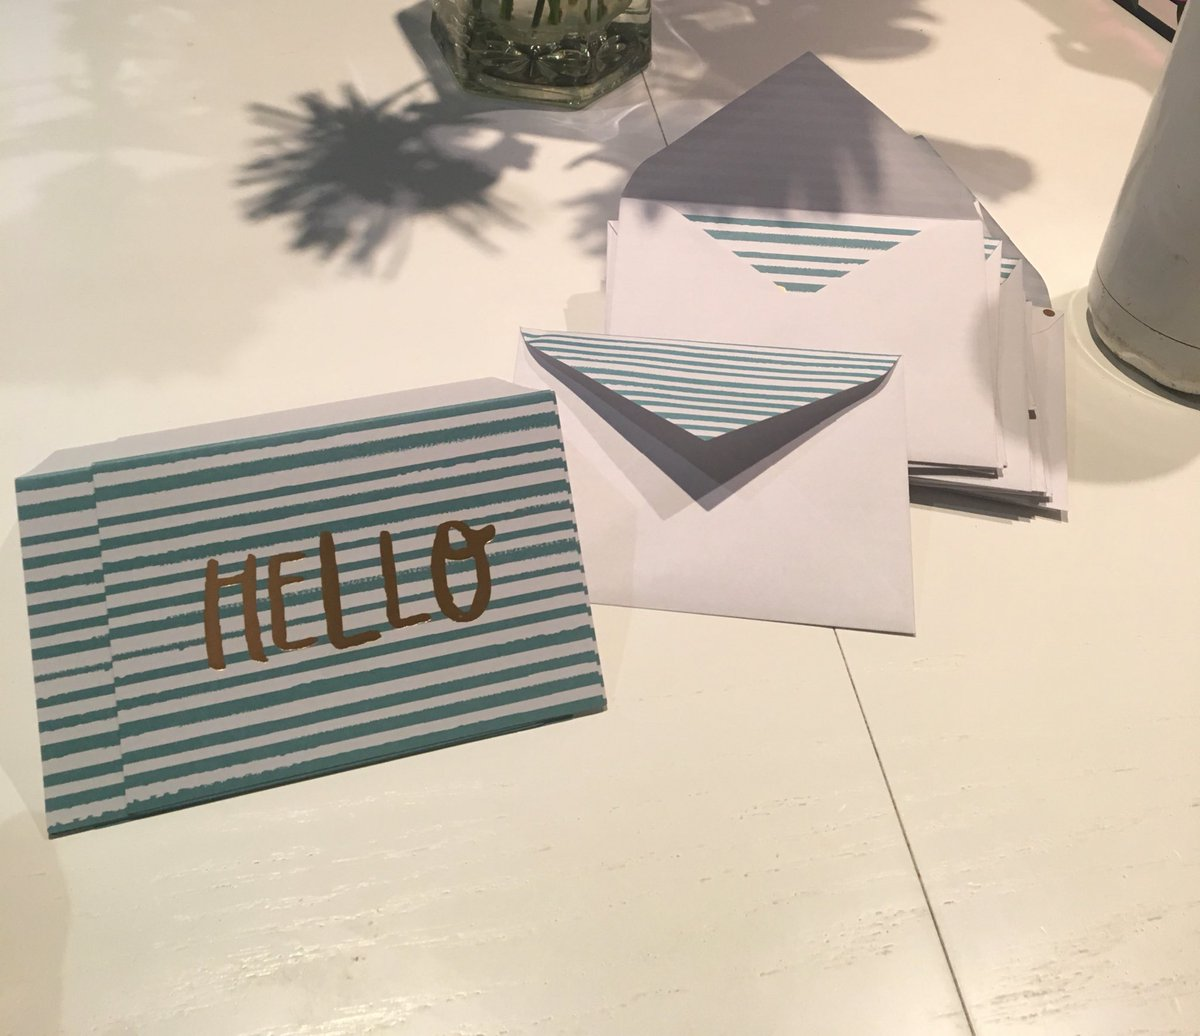 The best part of a new year is meeting my new kiddos. Writing notes to say hello! <a target='_blank' href='https://t.co/LRdy5n22Gy'>https://t.co/LRdy5n22Gy</a>